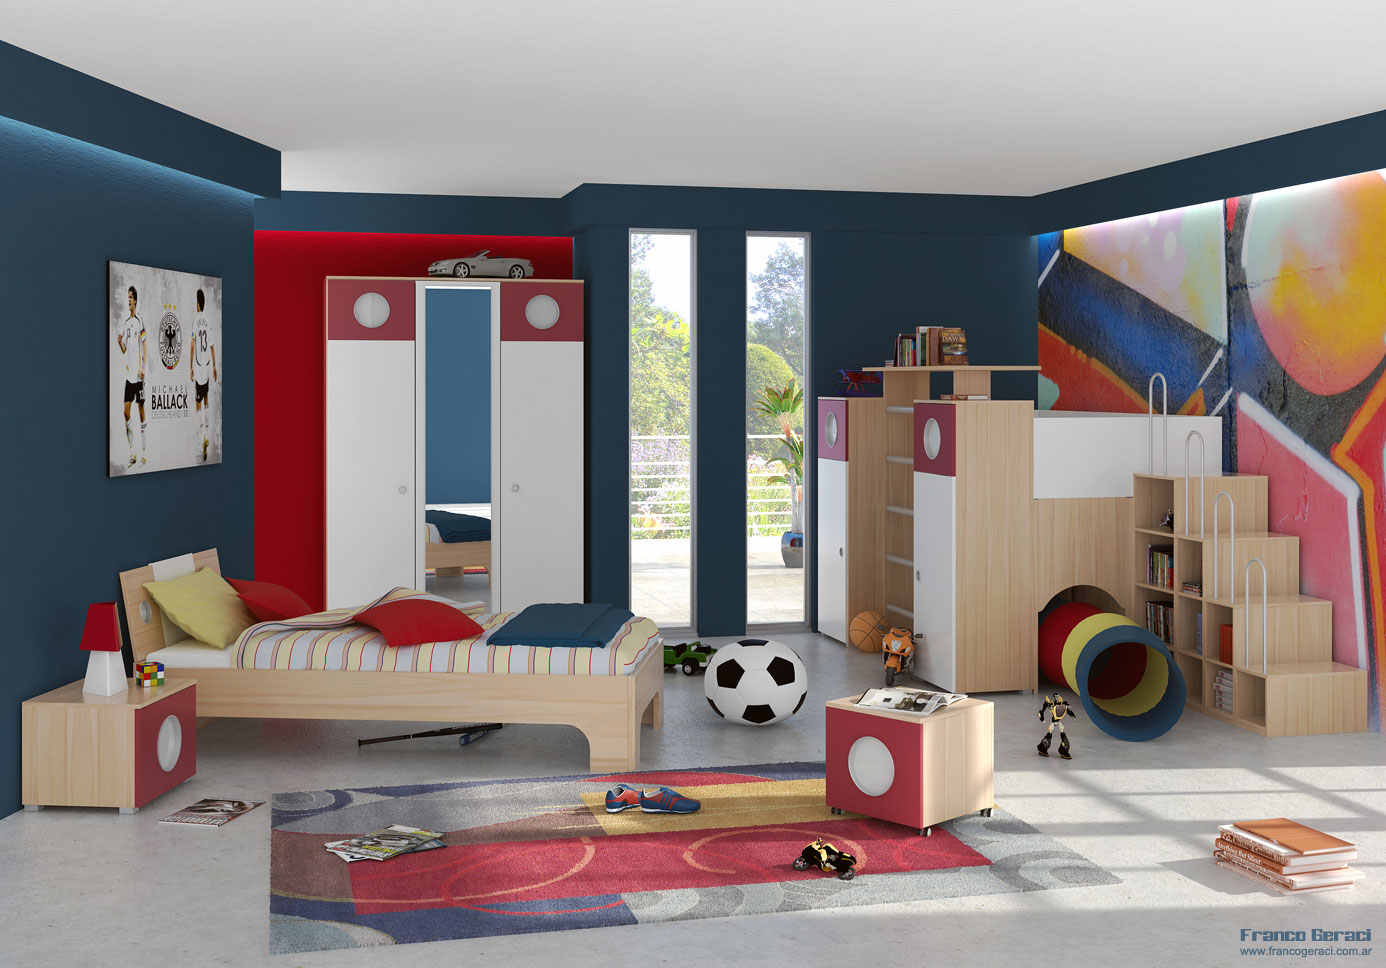 A spacious kids bedroom design ideas interior design ideas for Interior design for bedroom red